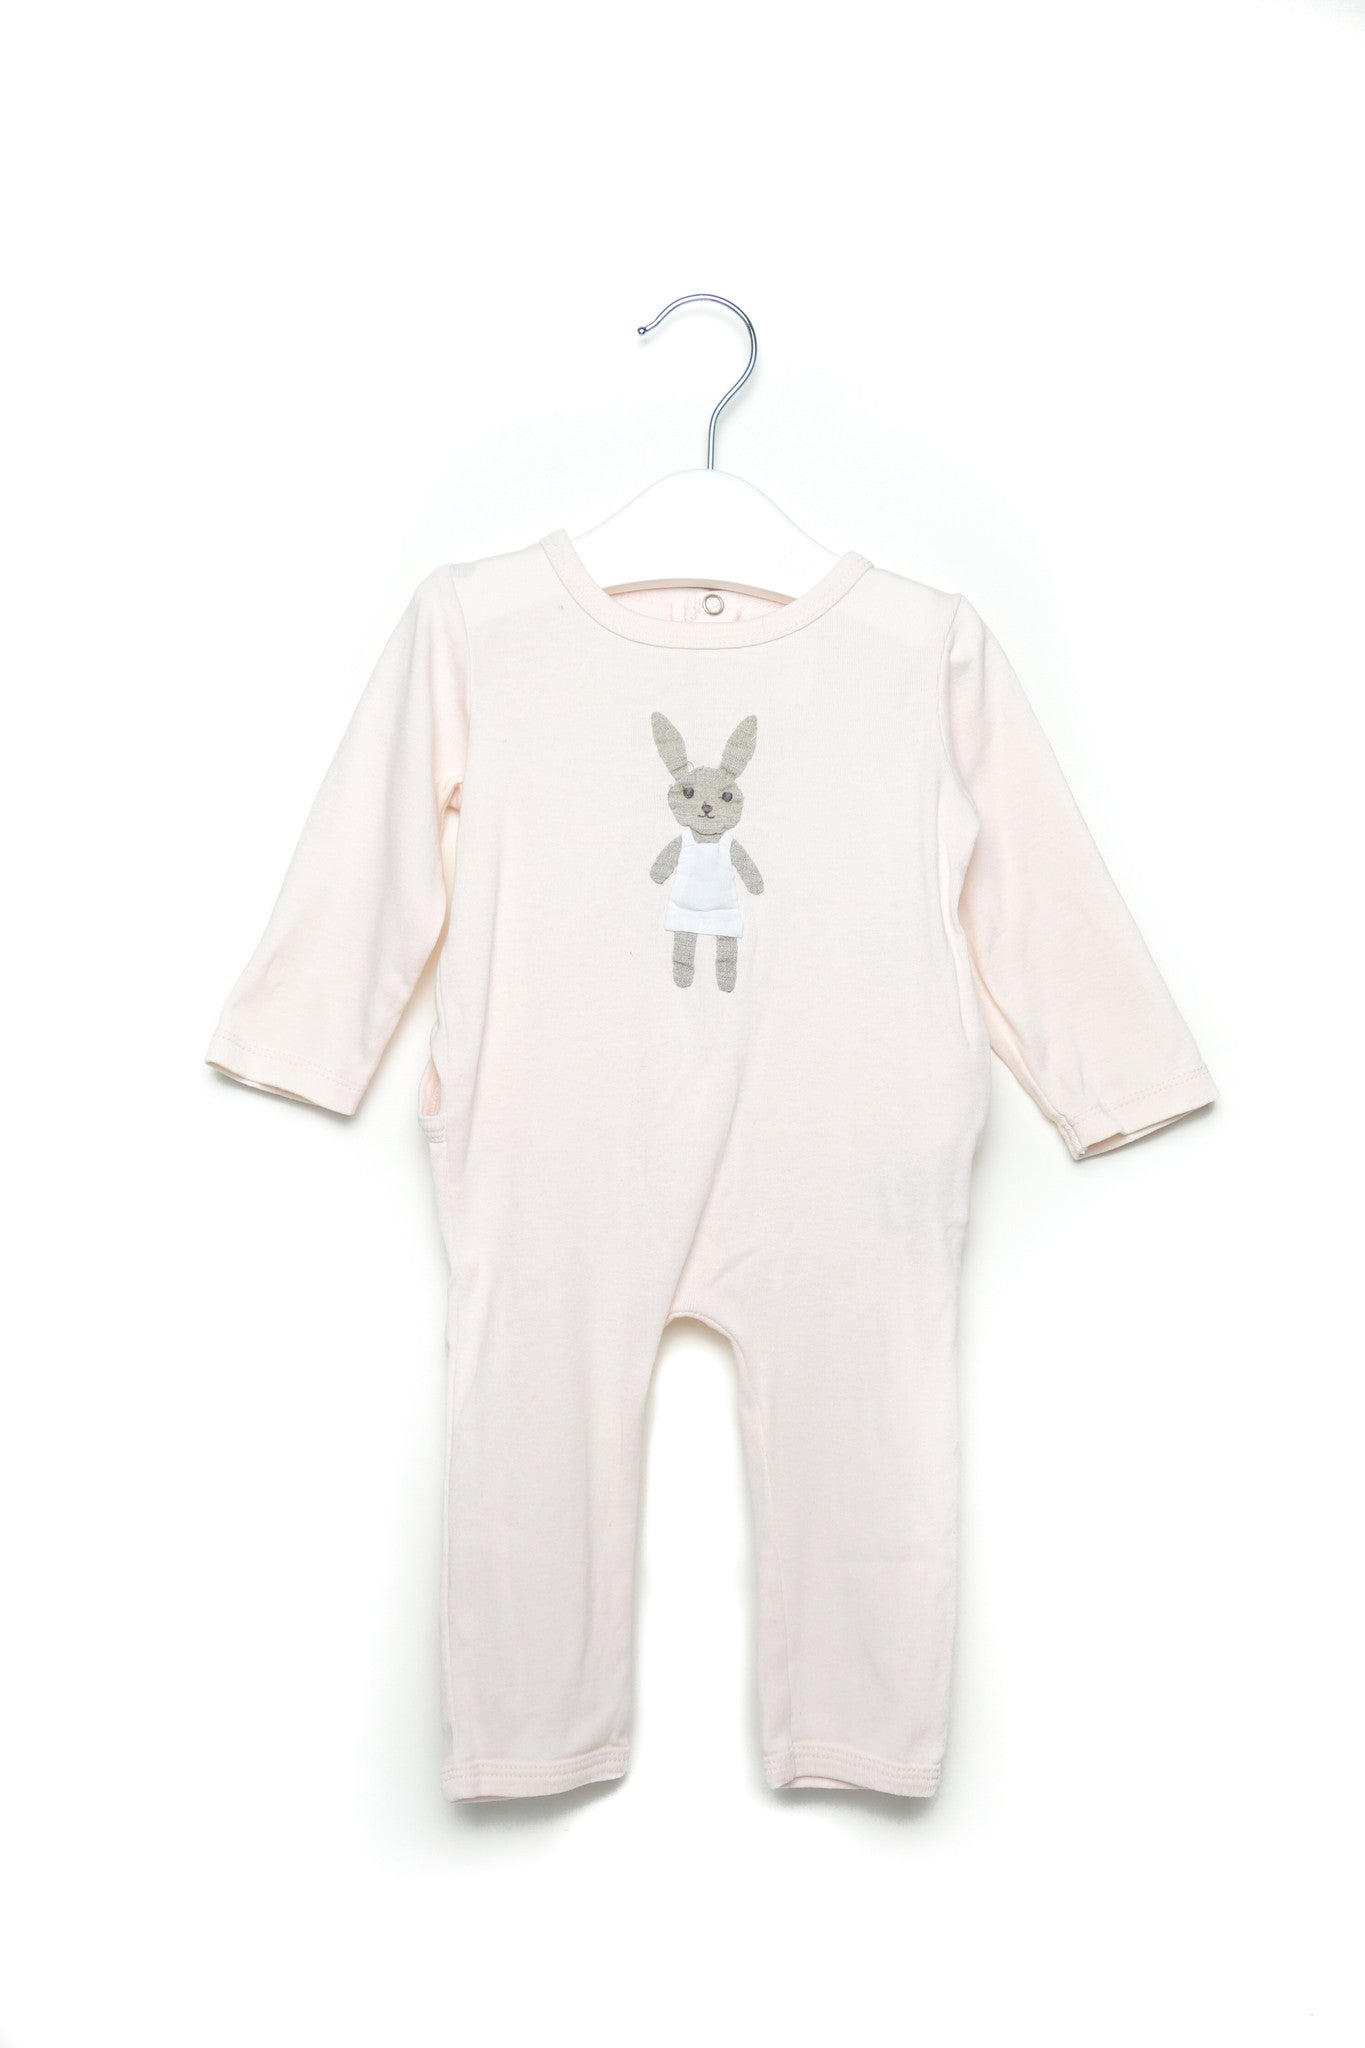 10001498~Jumpsuit 3-6M, Seed at Retykle - Online Baby & Kids Clothing Up to 90% Off